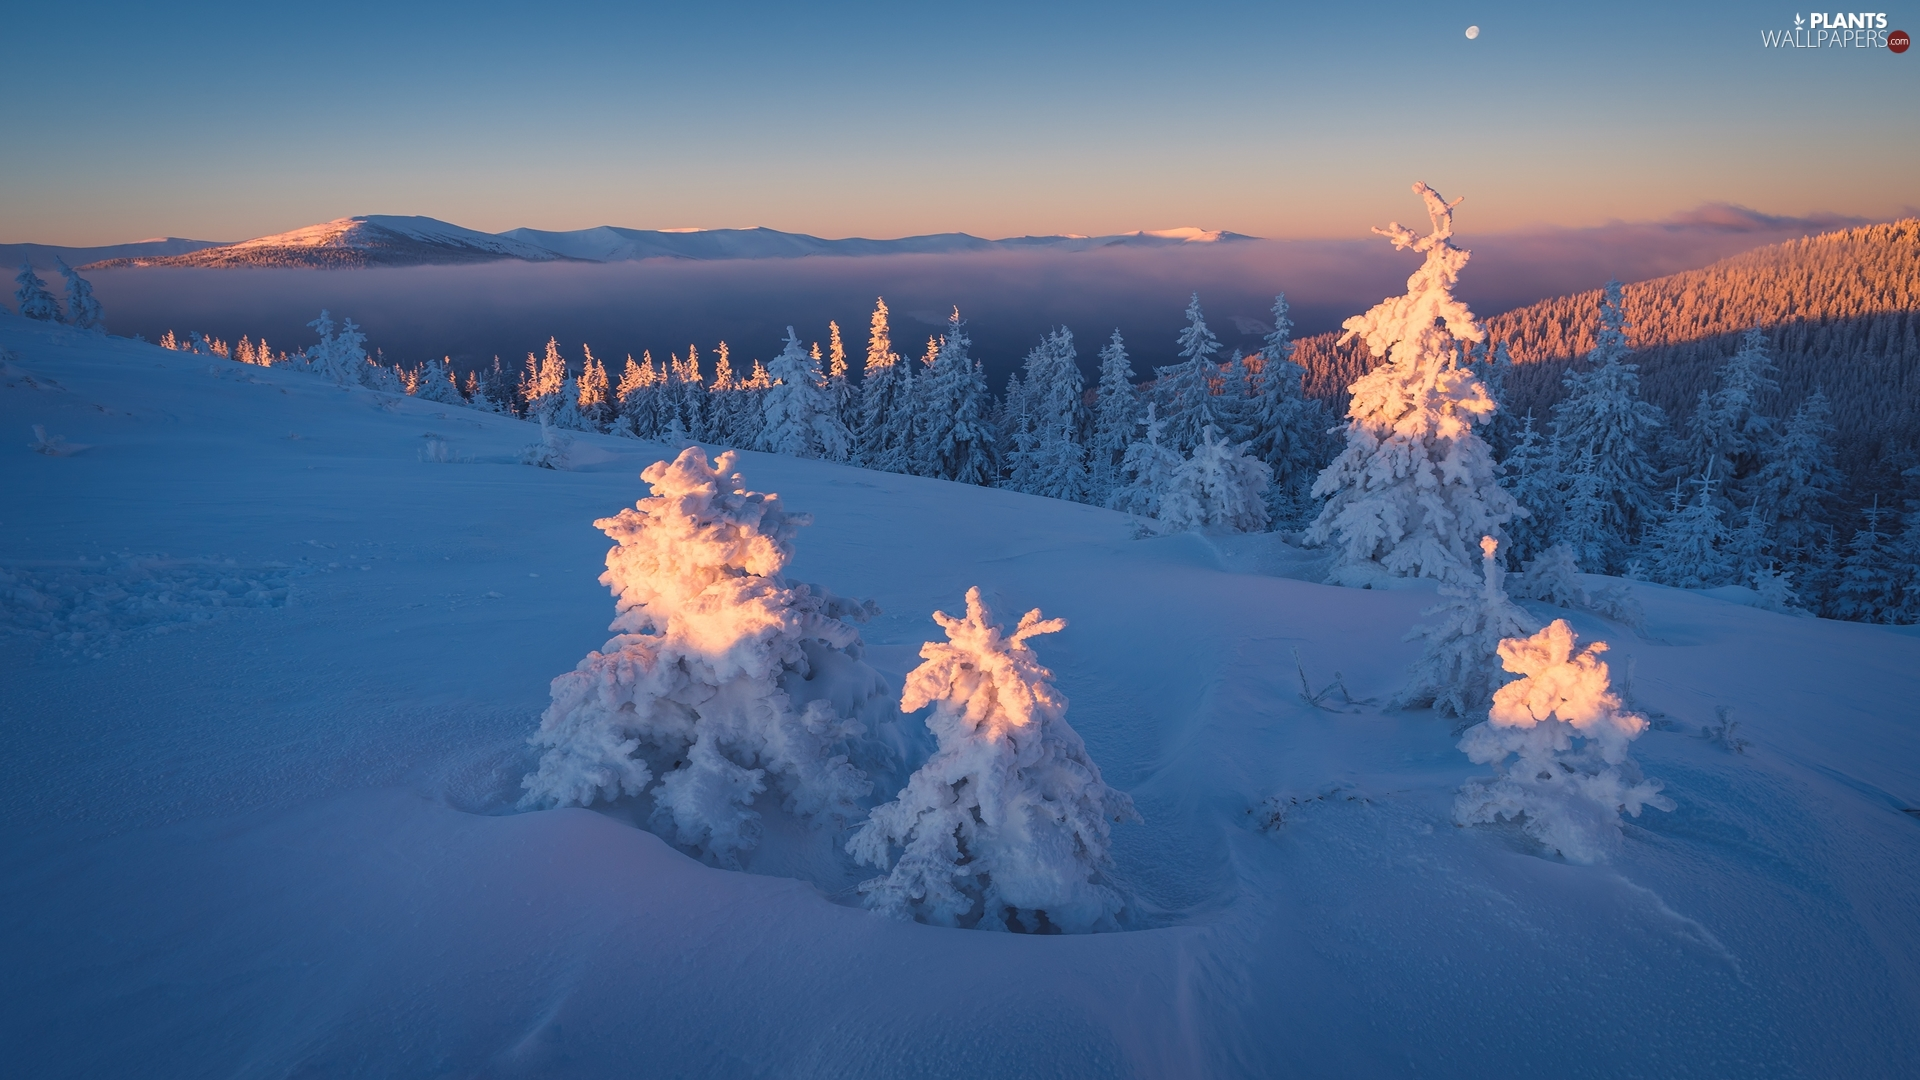 forest, winter, Spruces, Ukraine, Snowy, Carpathian Mountains